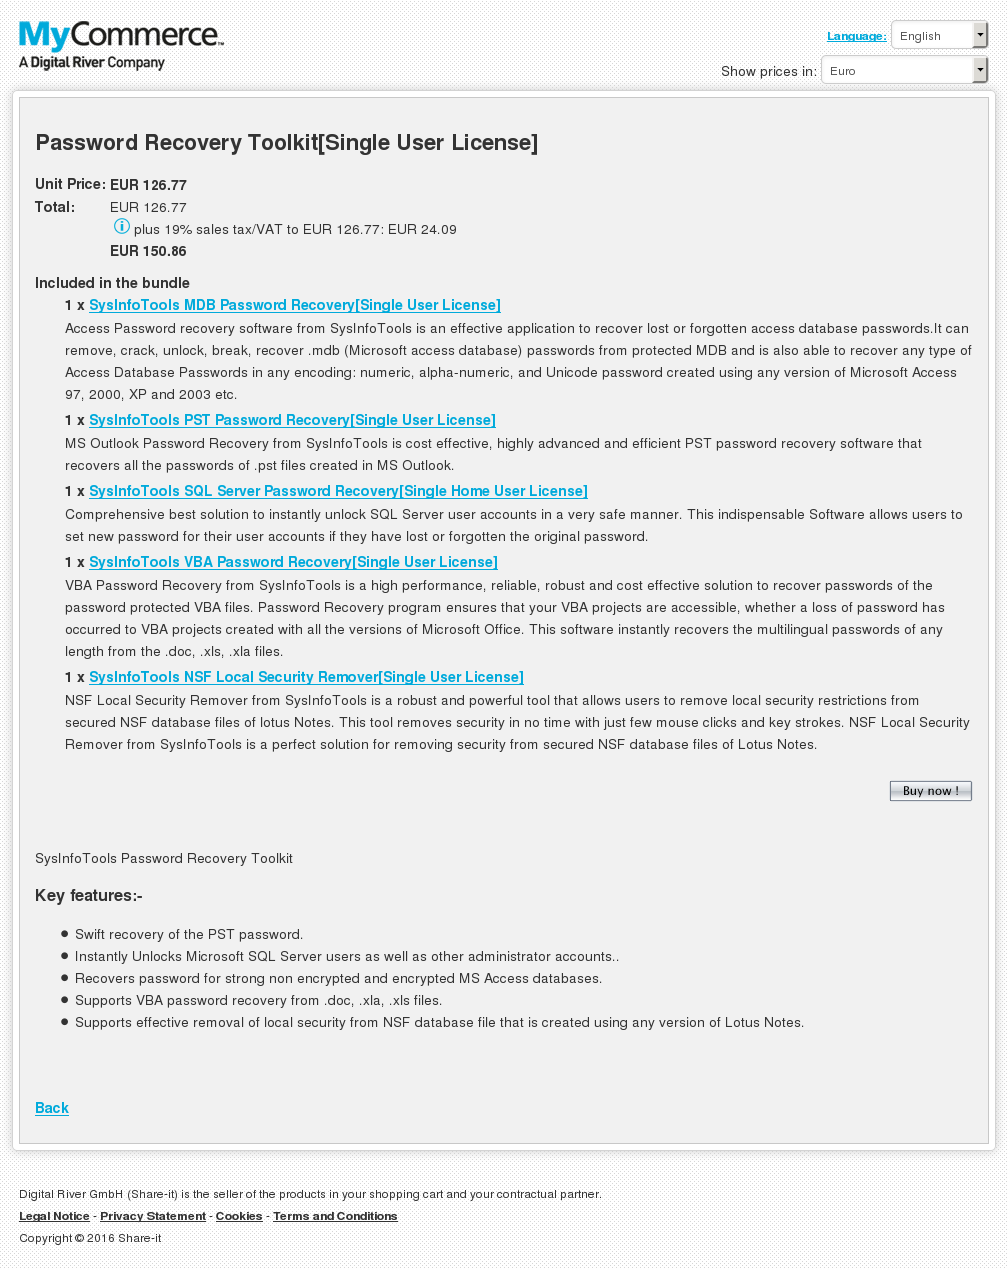 Password Recovery Toolkit Single User License Review